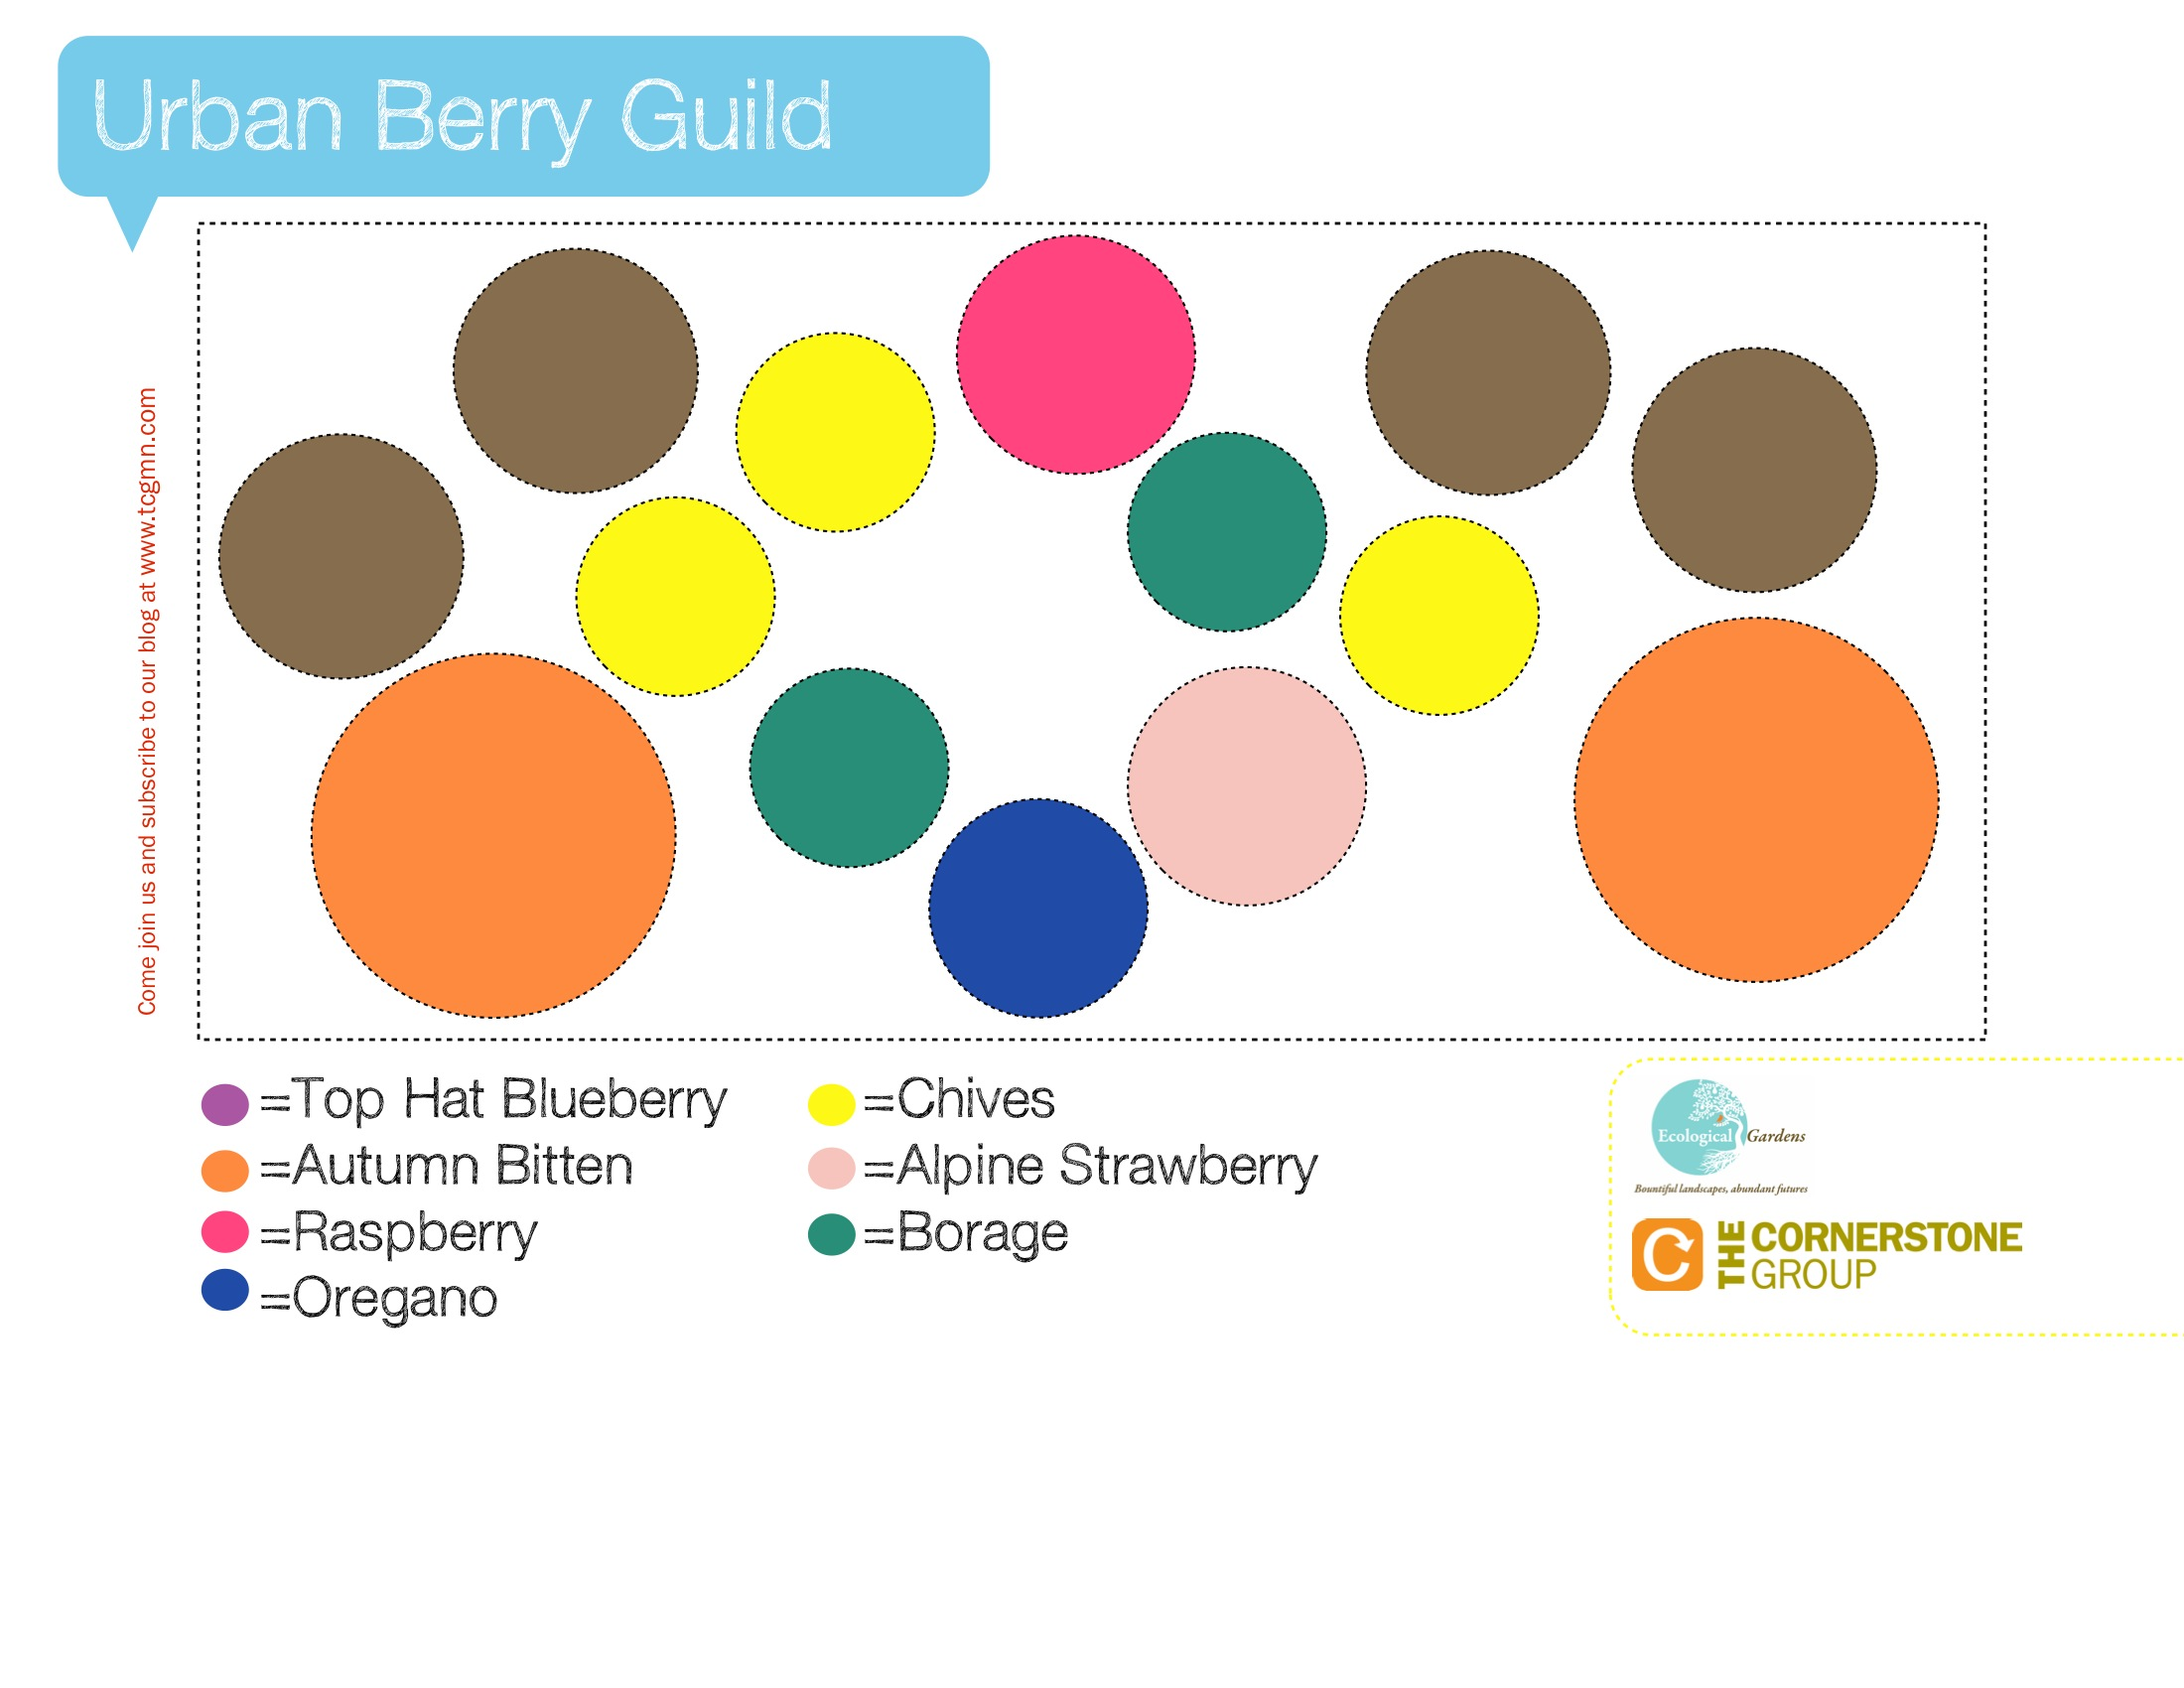 urban-berry-guild